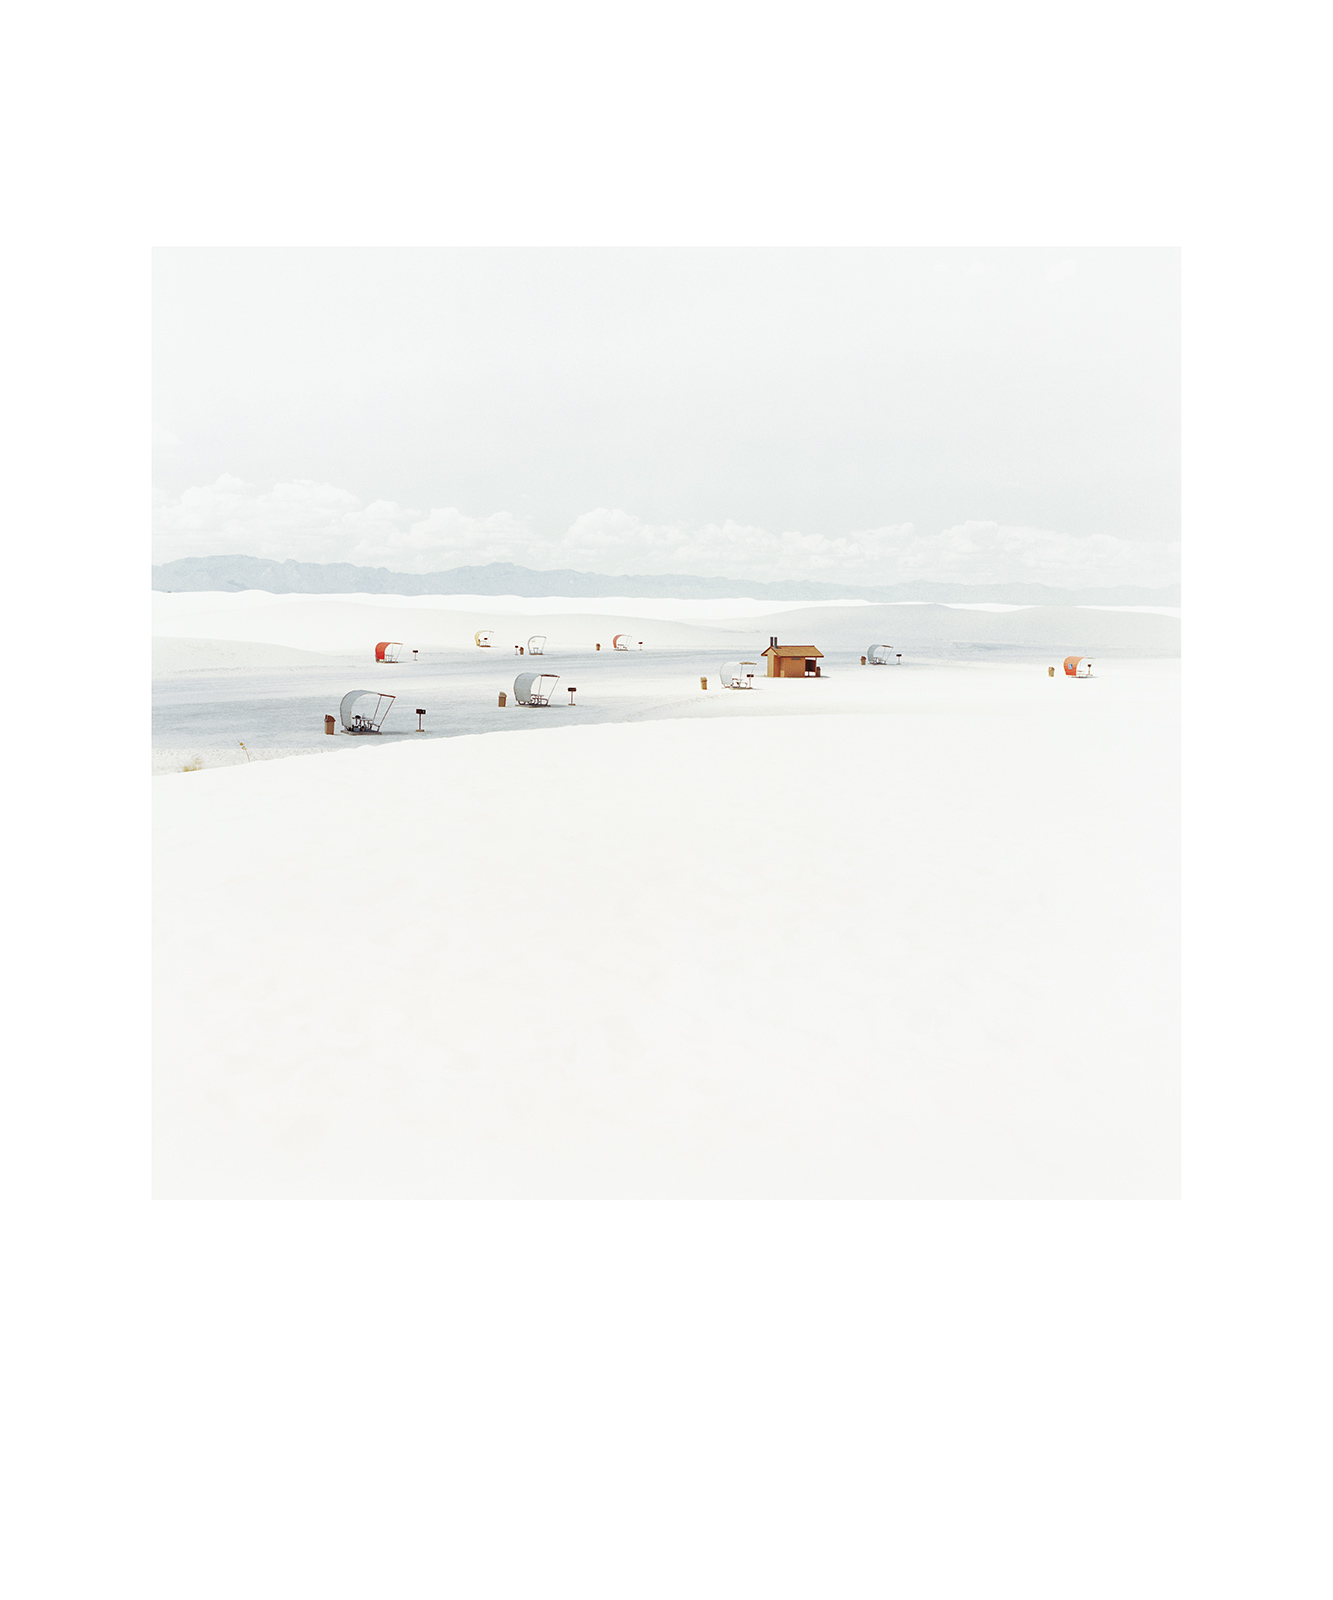 White Sands #1 by Julia Christe